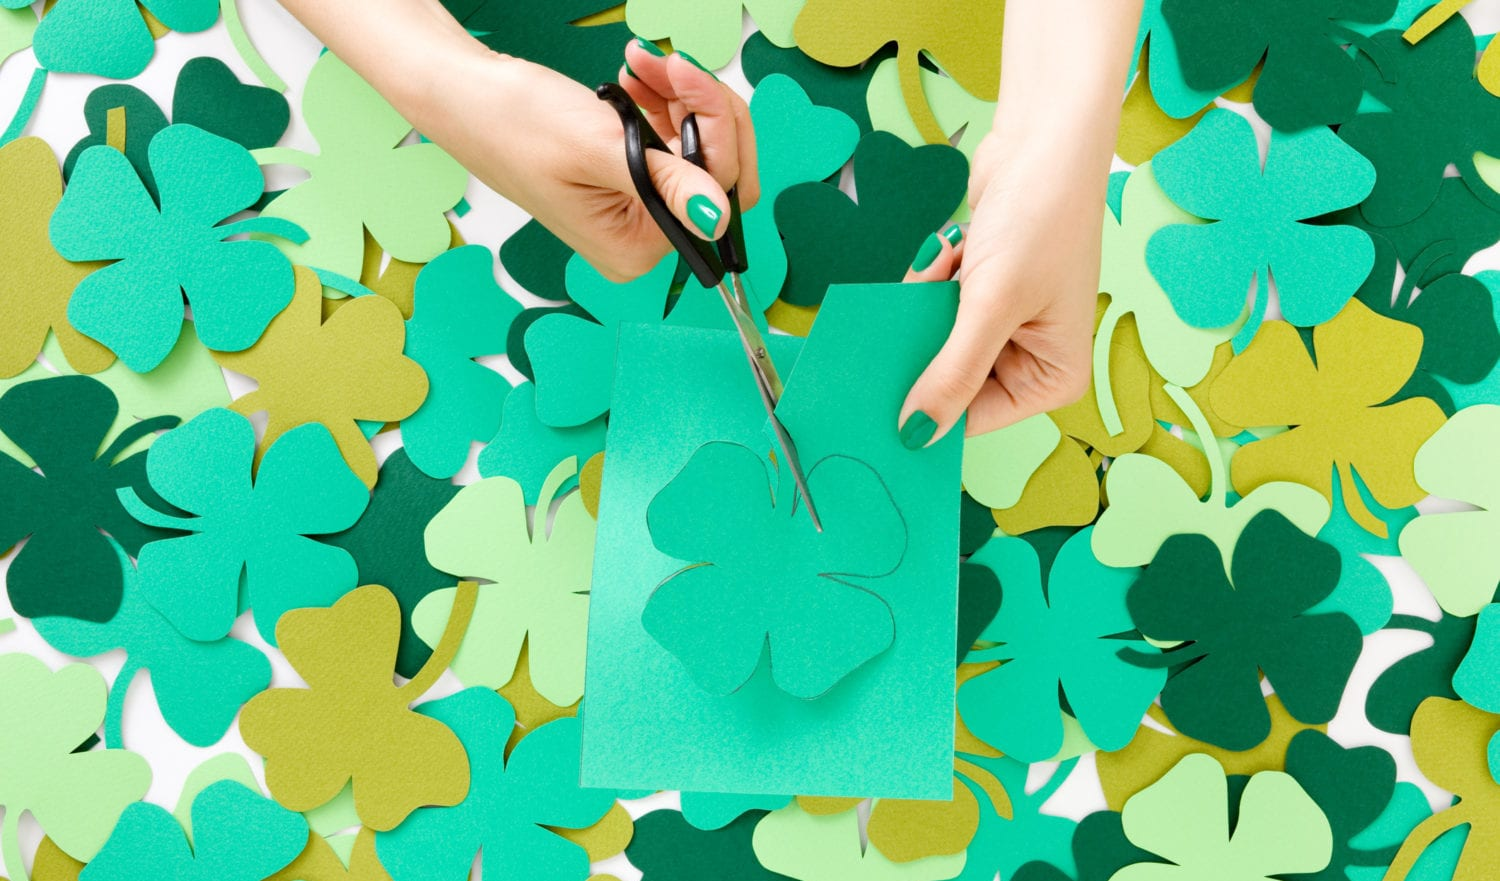 Young woman cutting green paper clovers